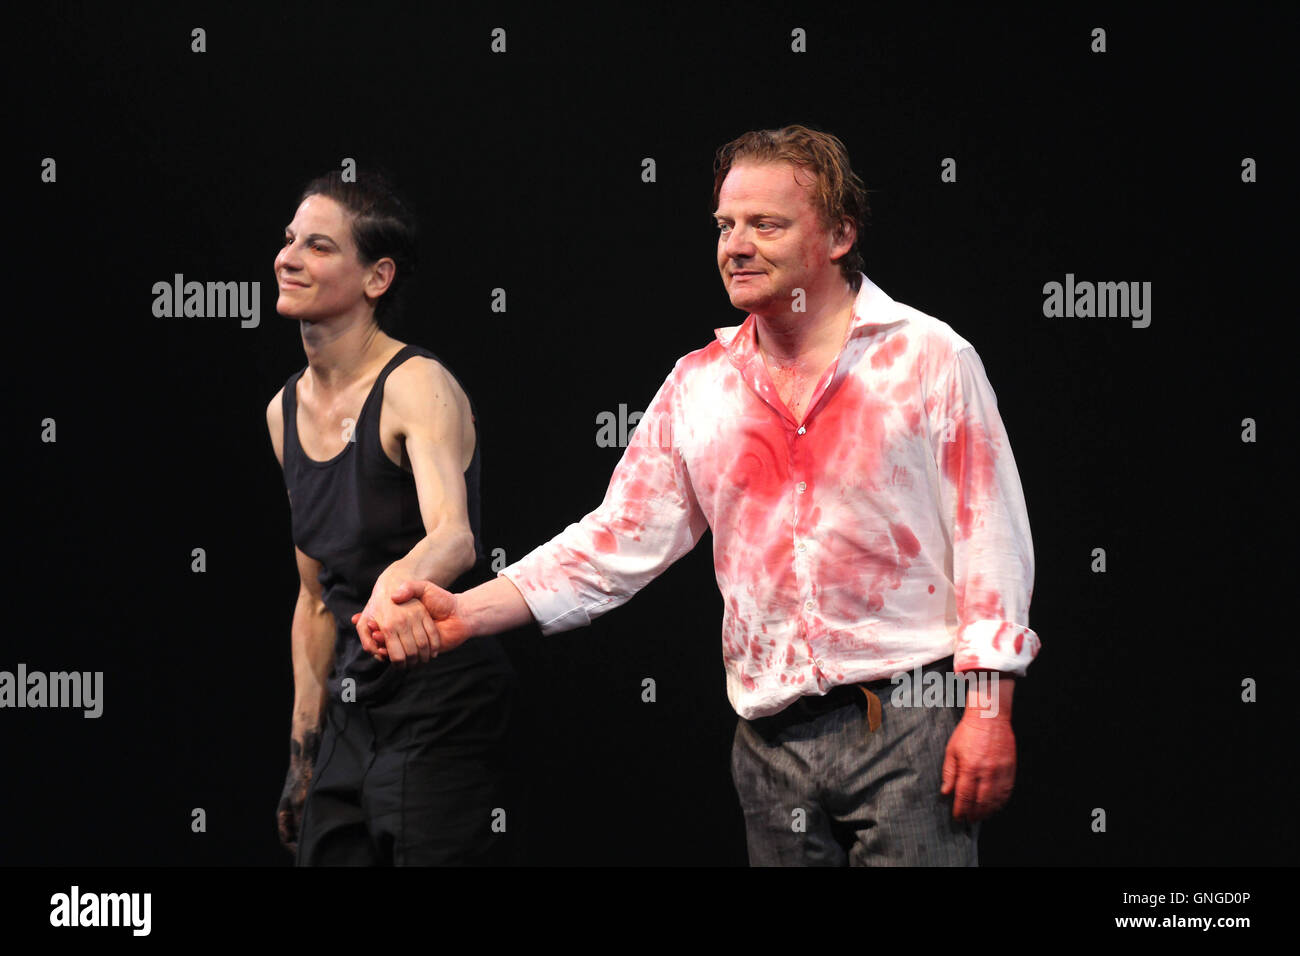 'Premiere of ''Faust'' at the Residenz Theater in Munich, 2014' - Stock Image